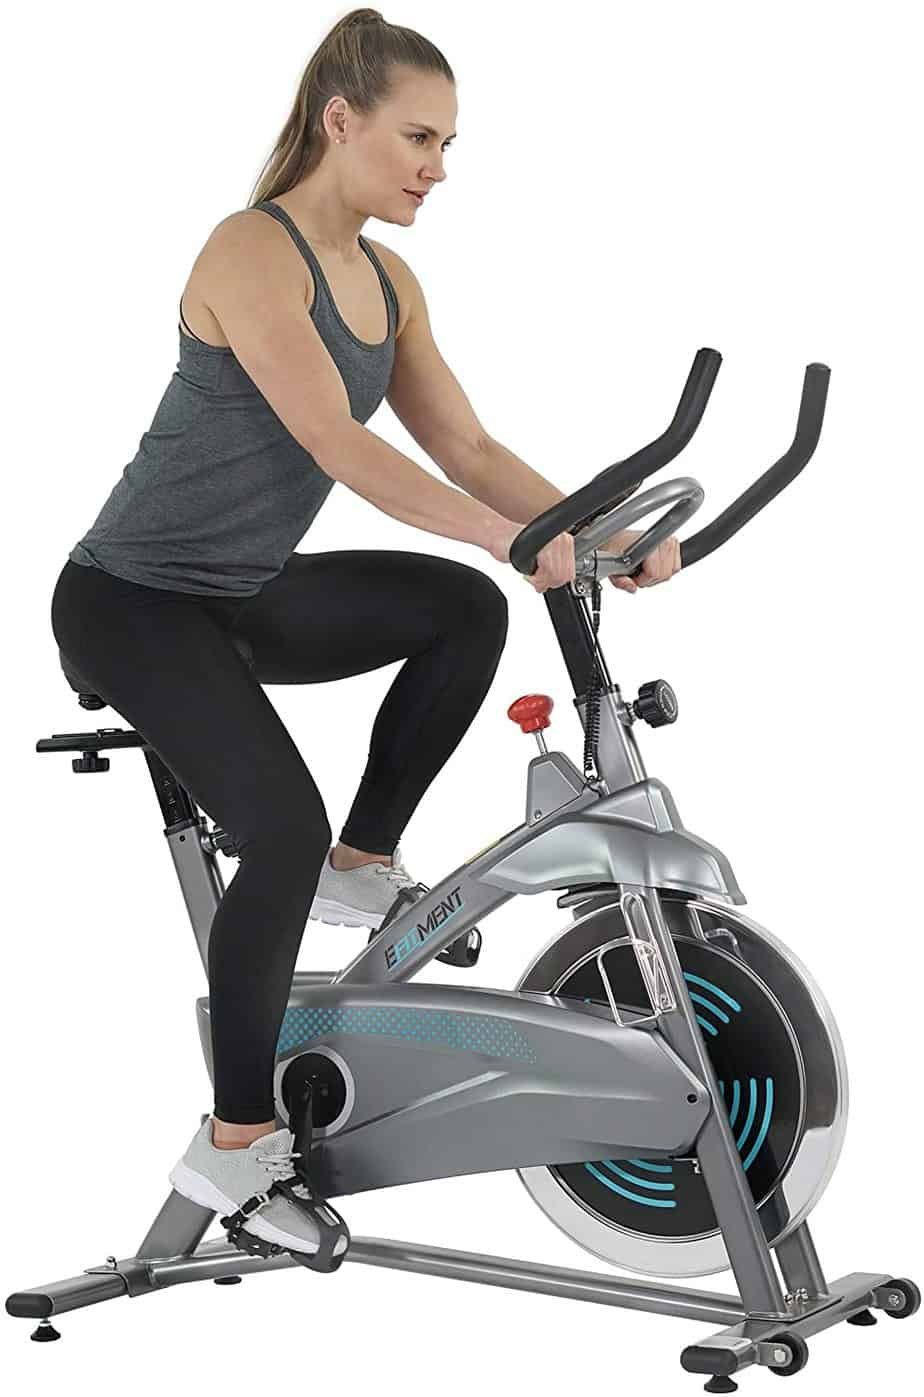 A lady is riding the EFITMENT IC037 Indoor Cycling Bike